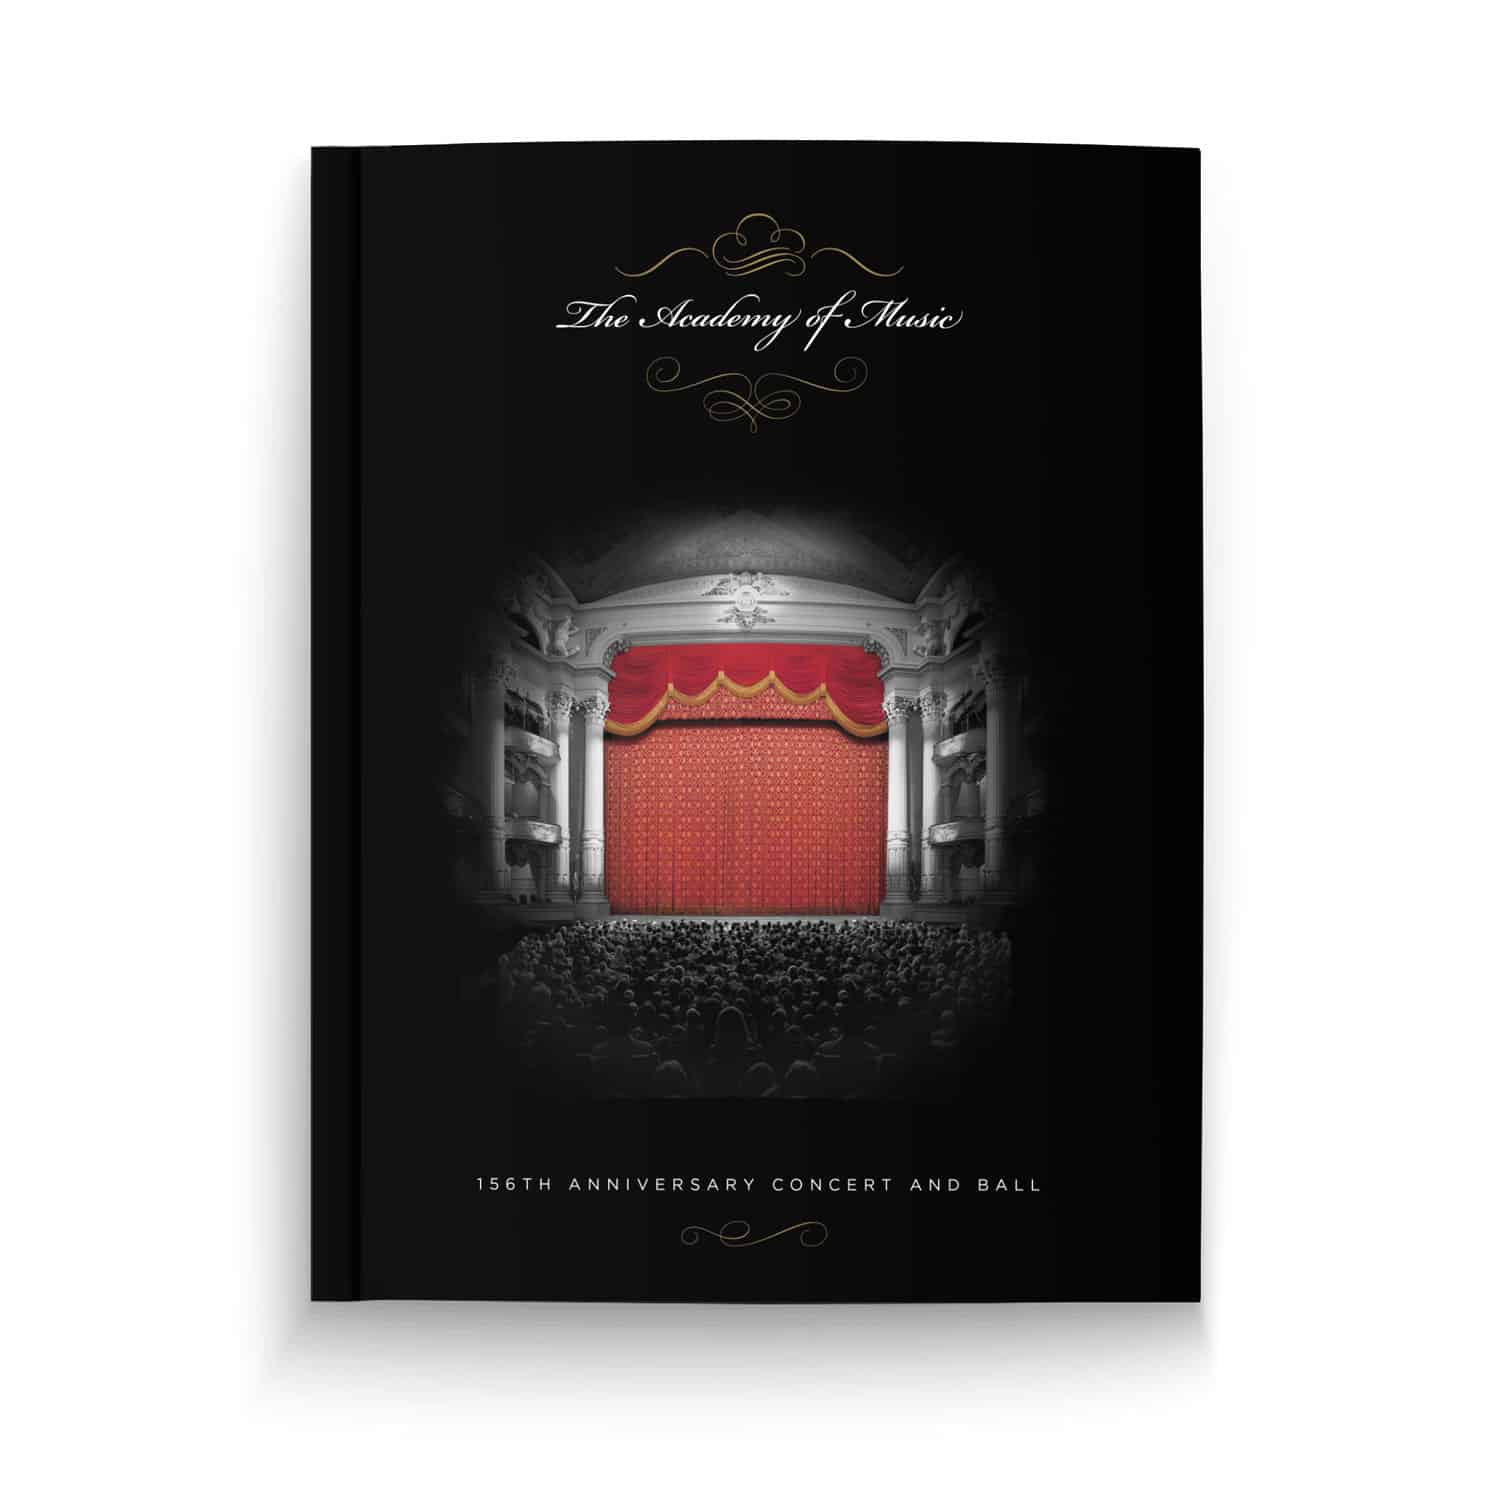 Academy of Music, 156th Anniversary Concert and Ball Program Book